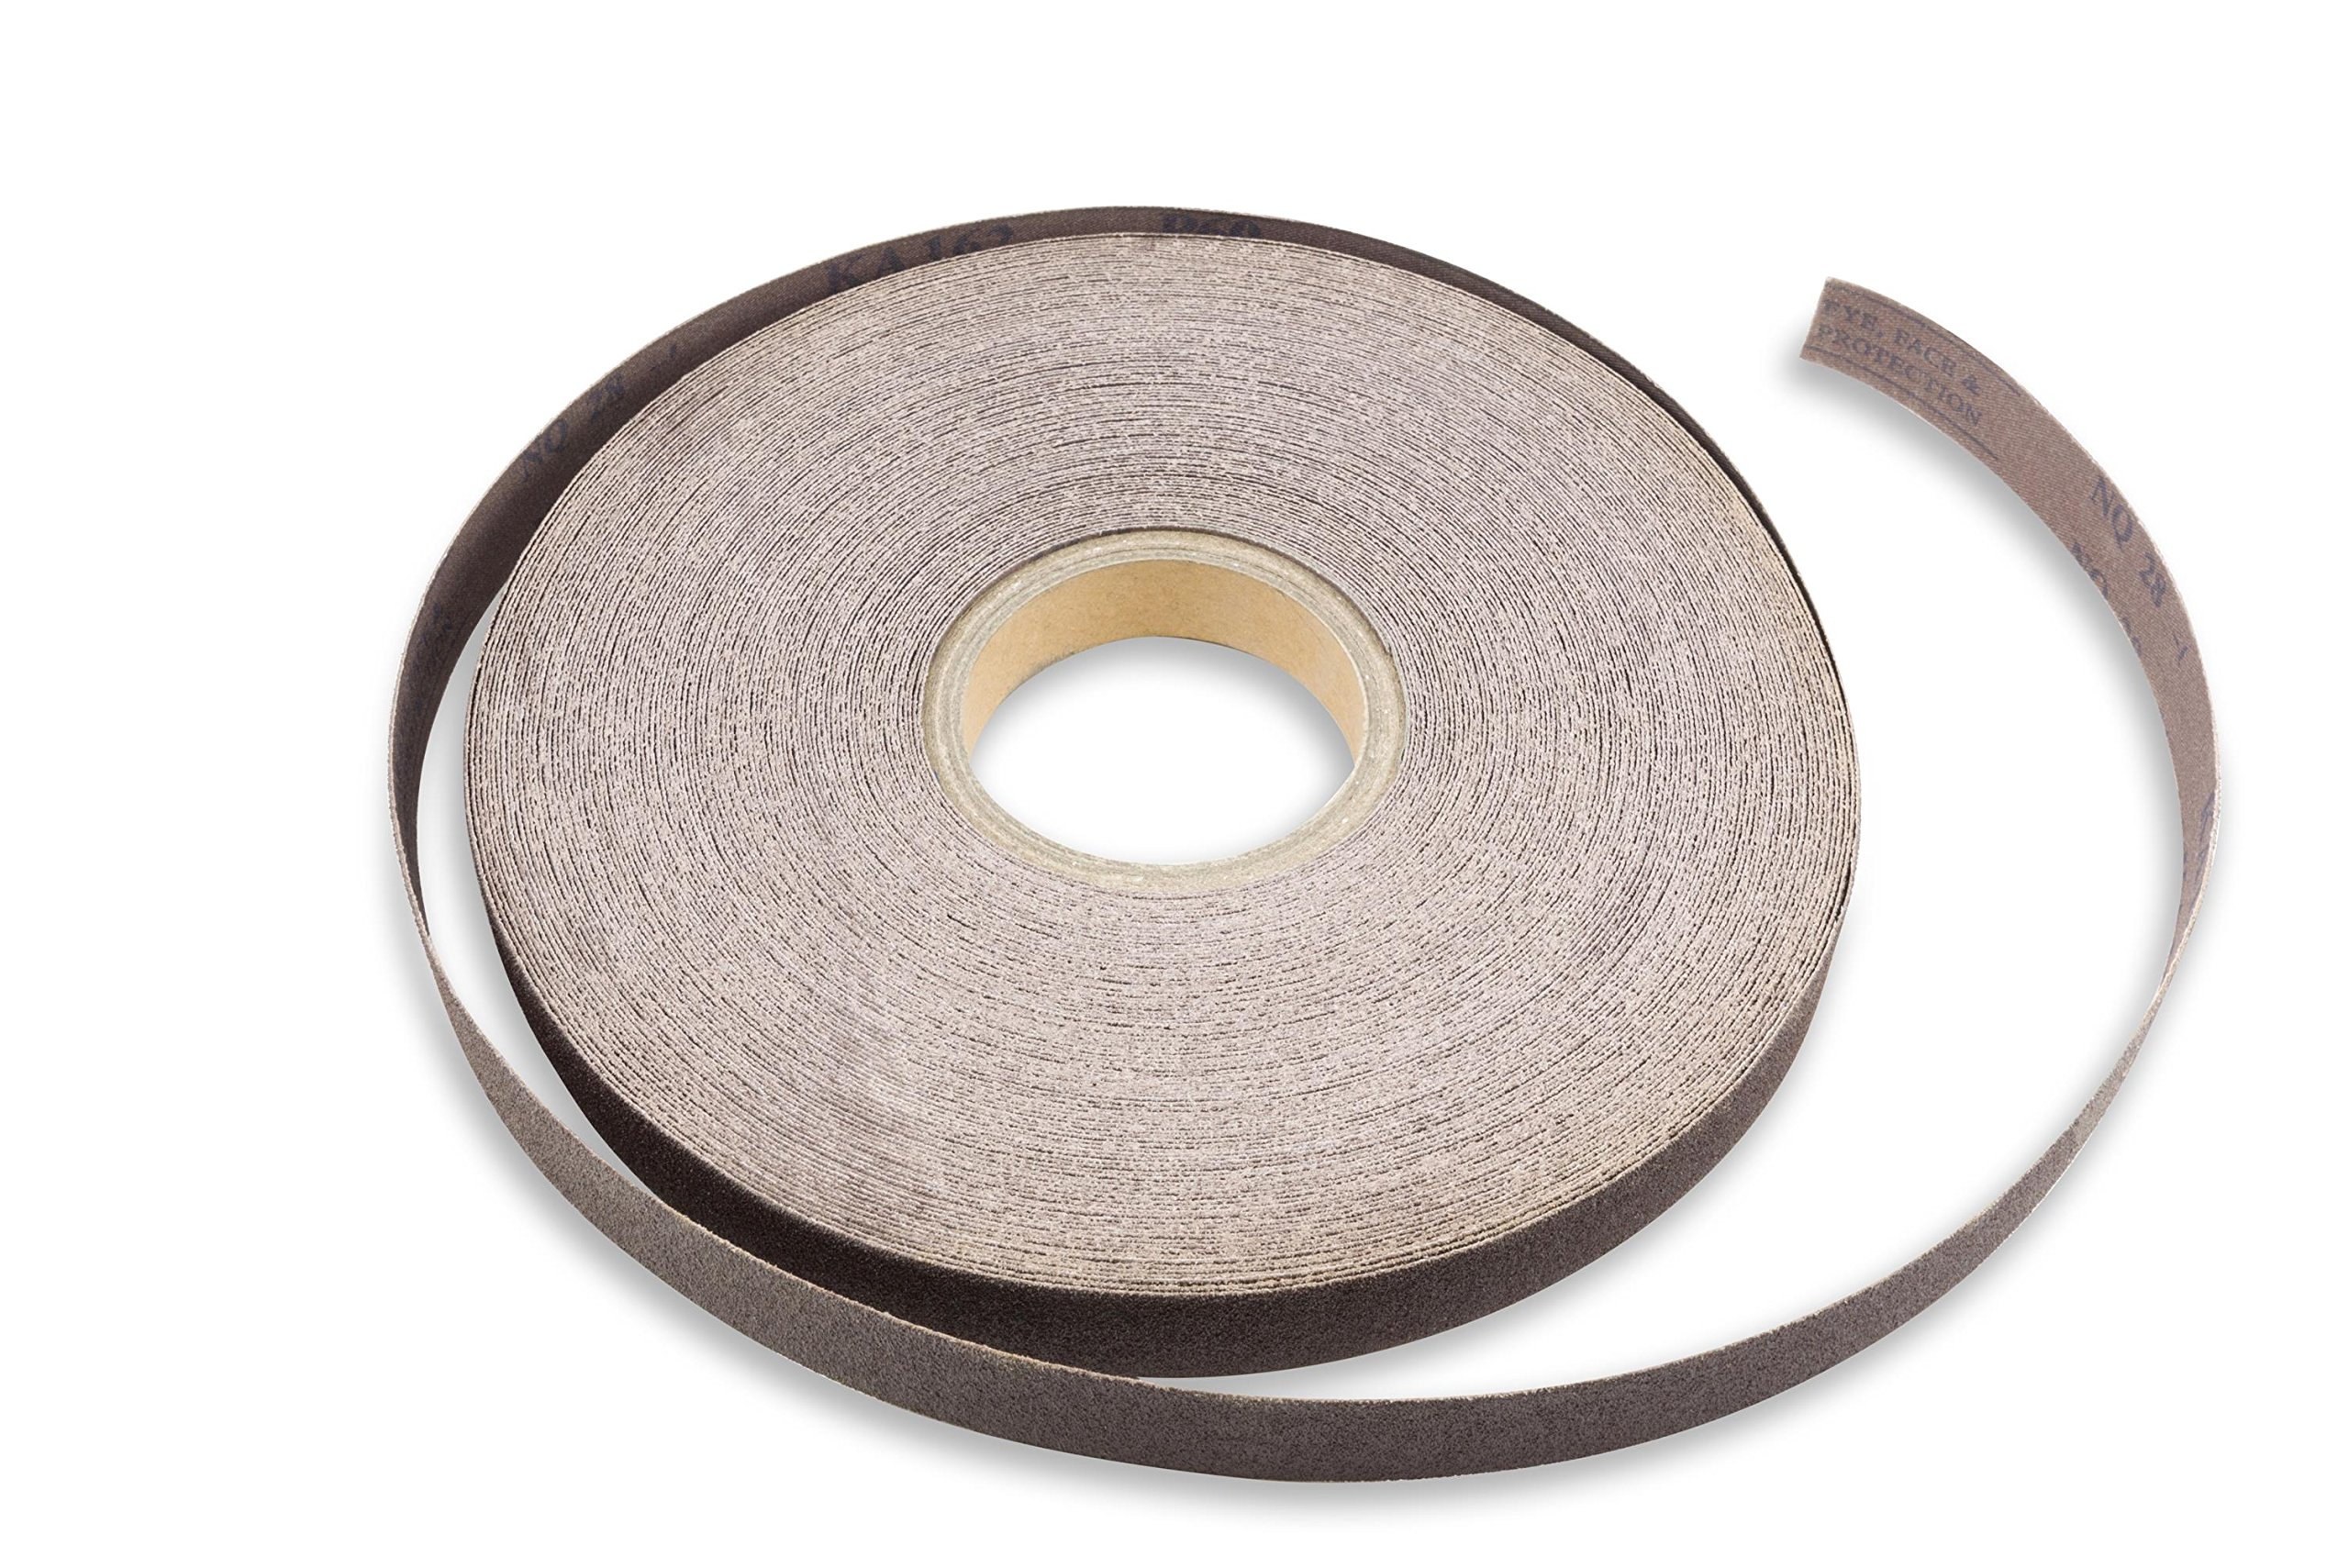 Norton K225 Metalite Abrasive Roll Cloth Backing Aluminum Oxide Grit P220 1-1//2 Width x 50yd Length Pack of 5